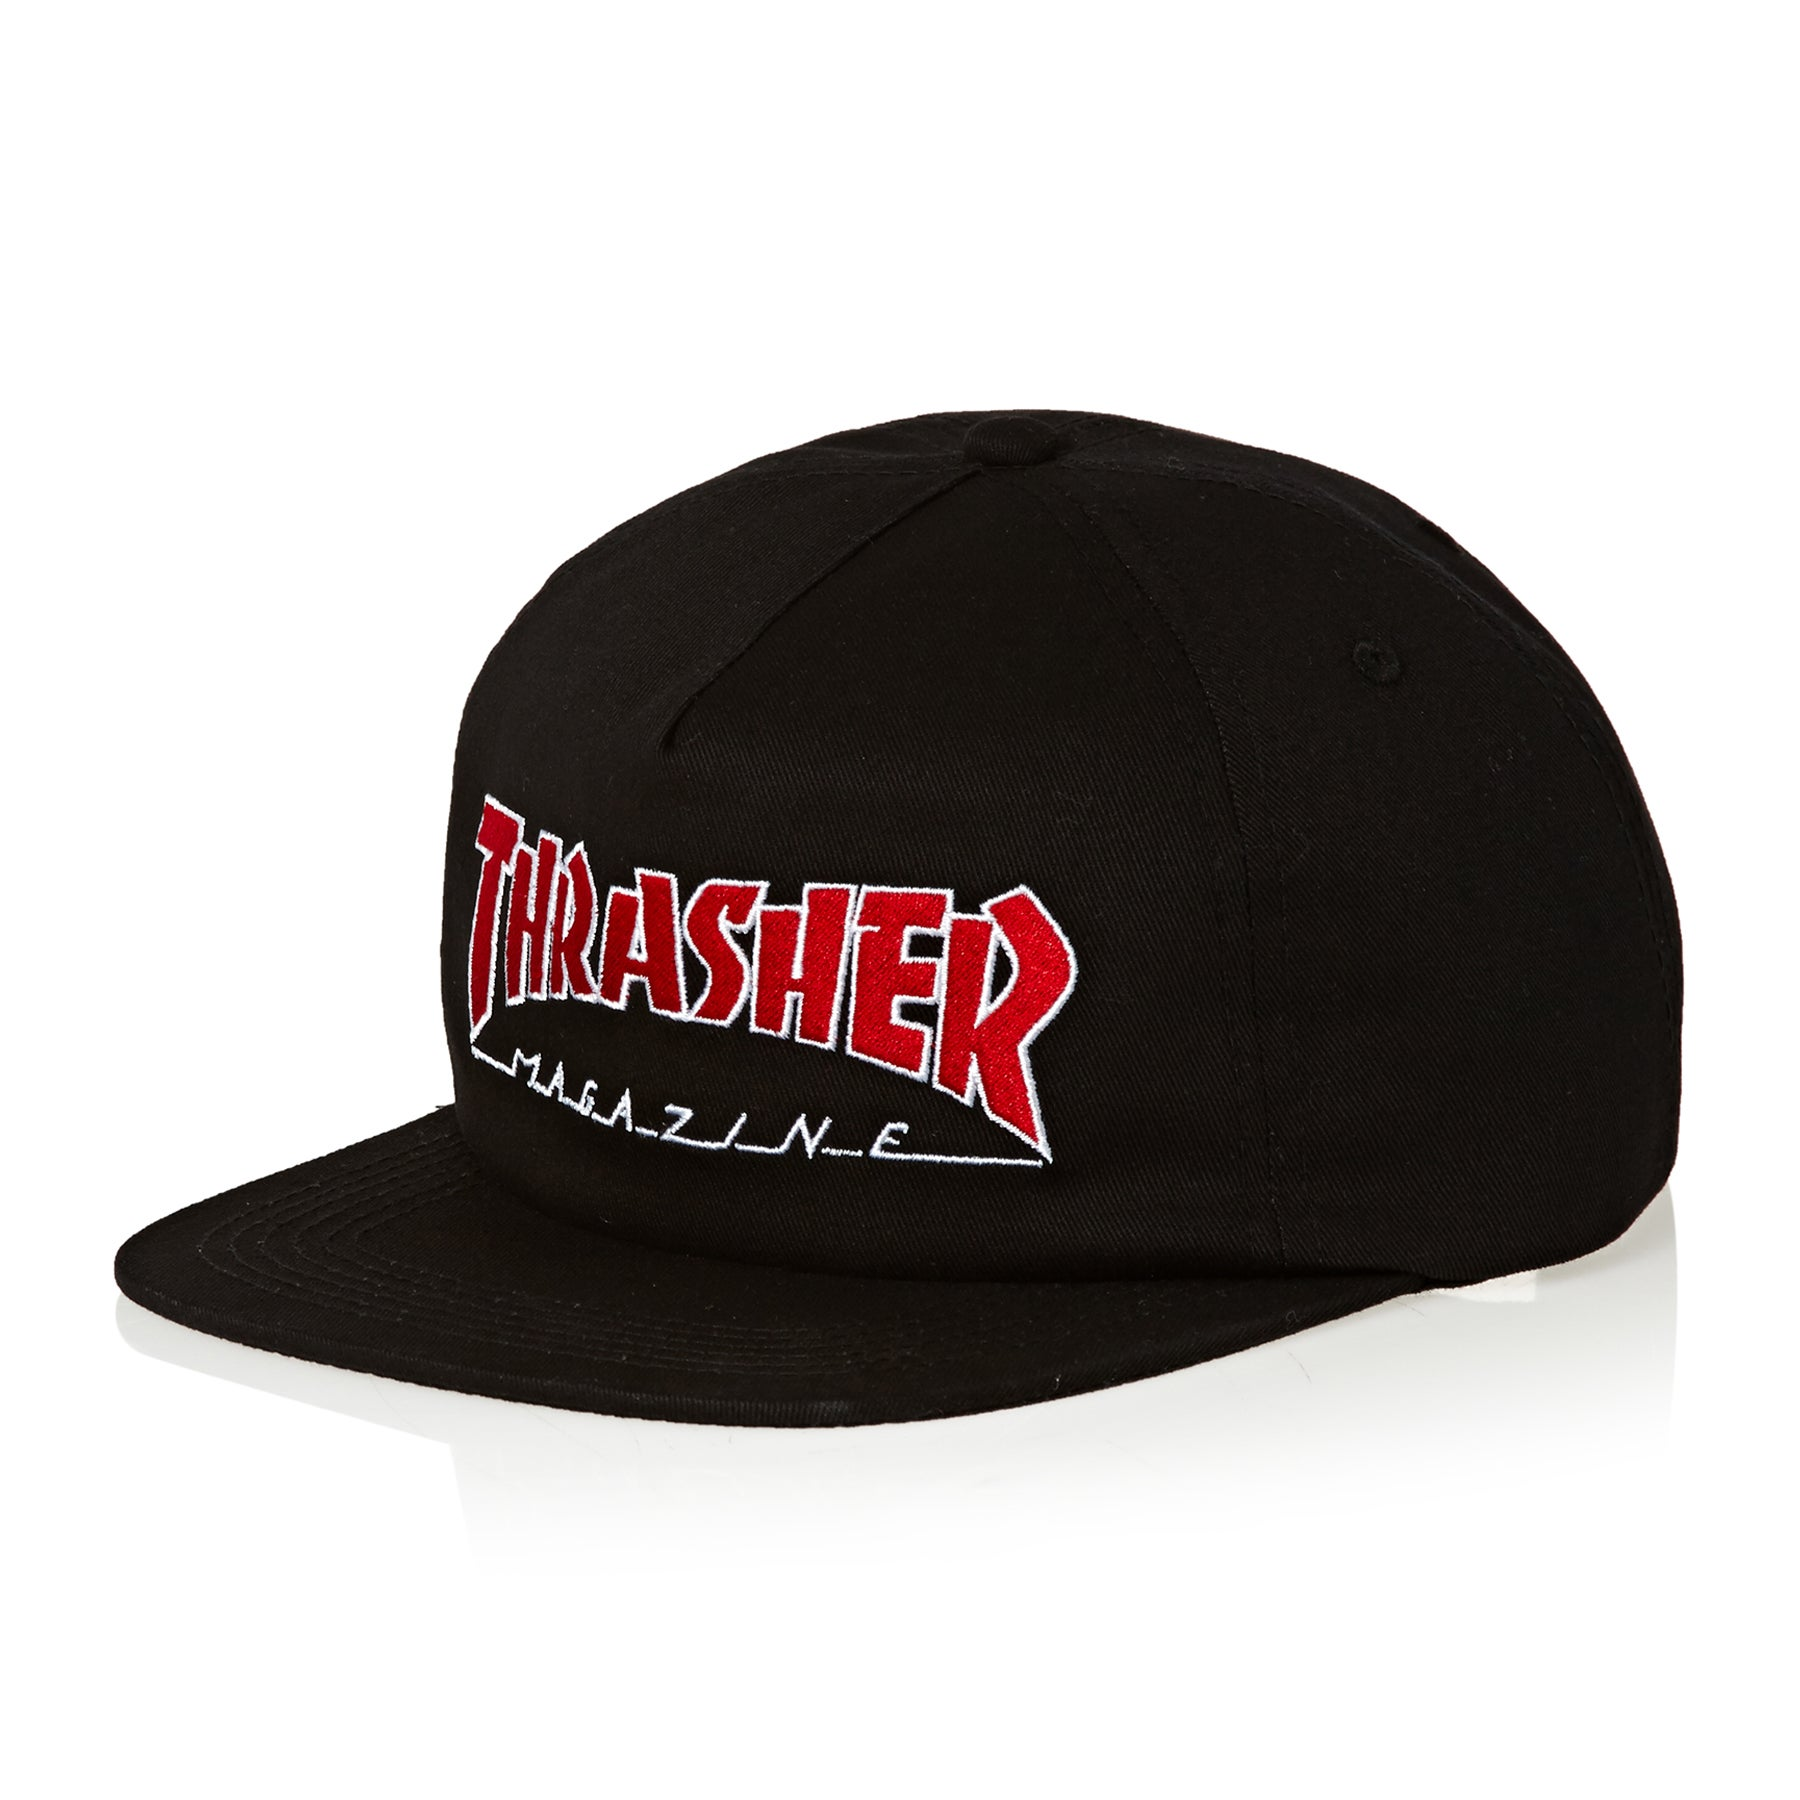 a28dbf67912 Thrasher Outlined Snapback Cap available from Surfdome